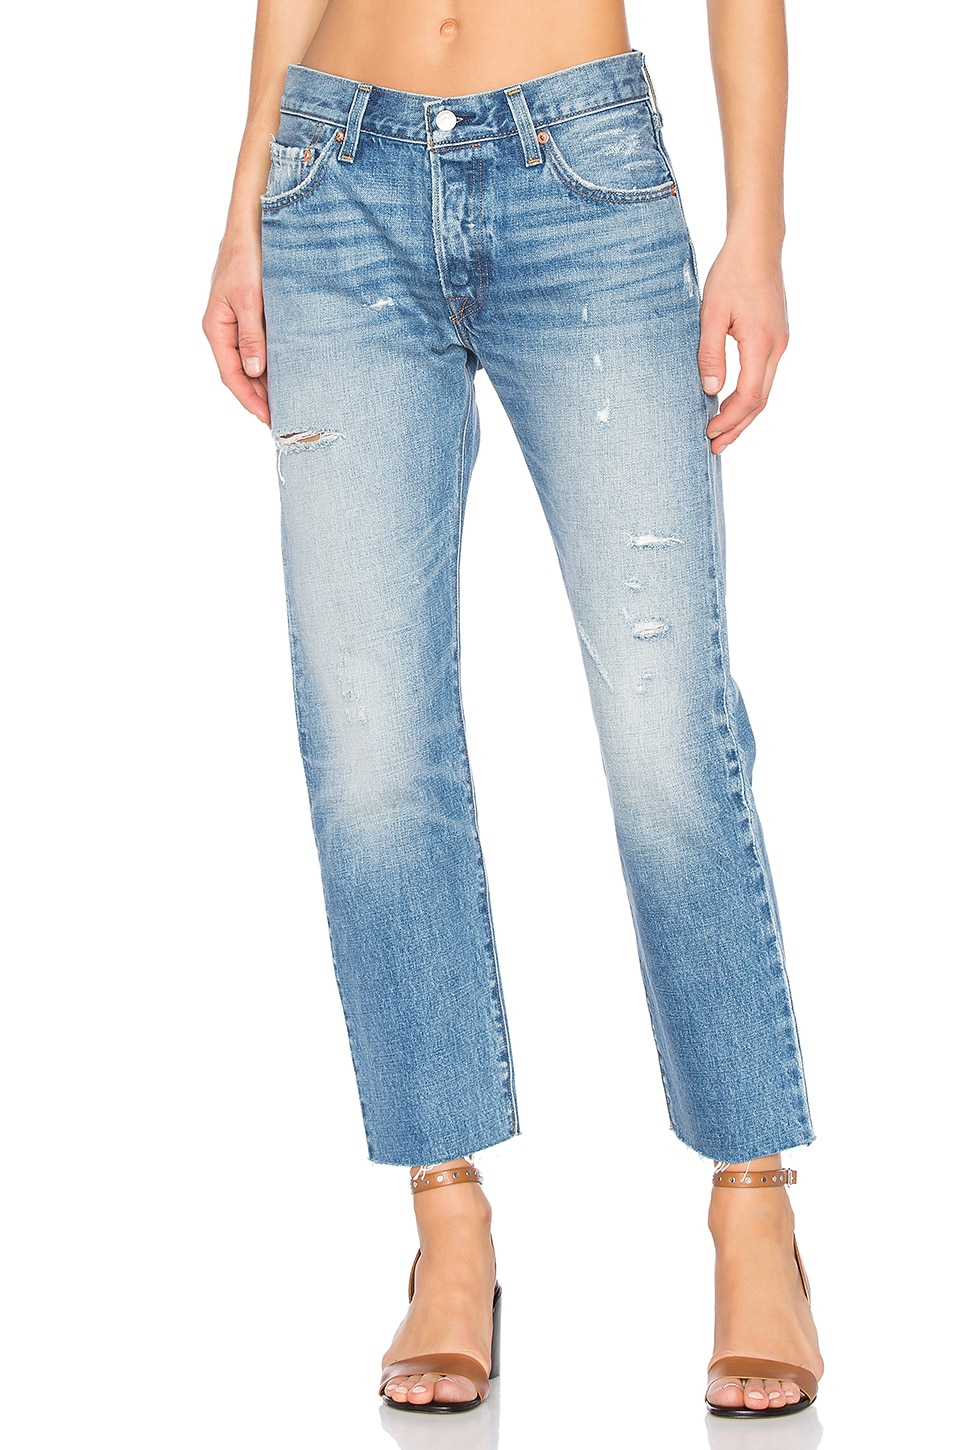 LEVI'S 501 in Into The Blue